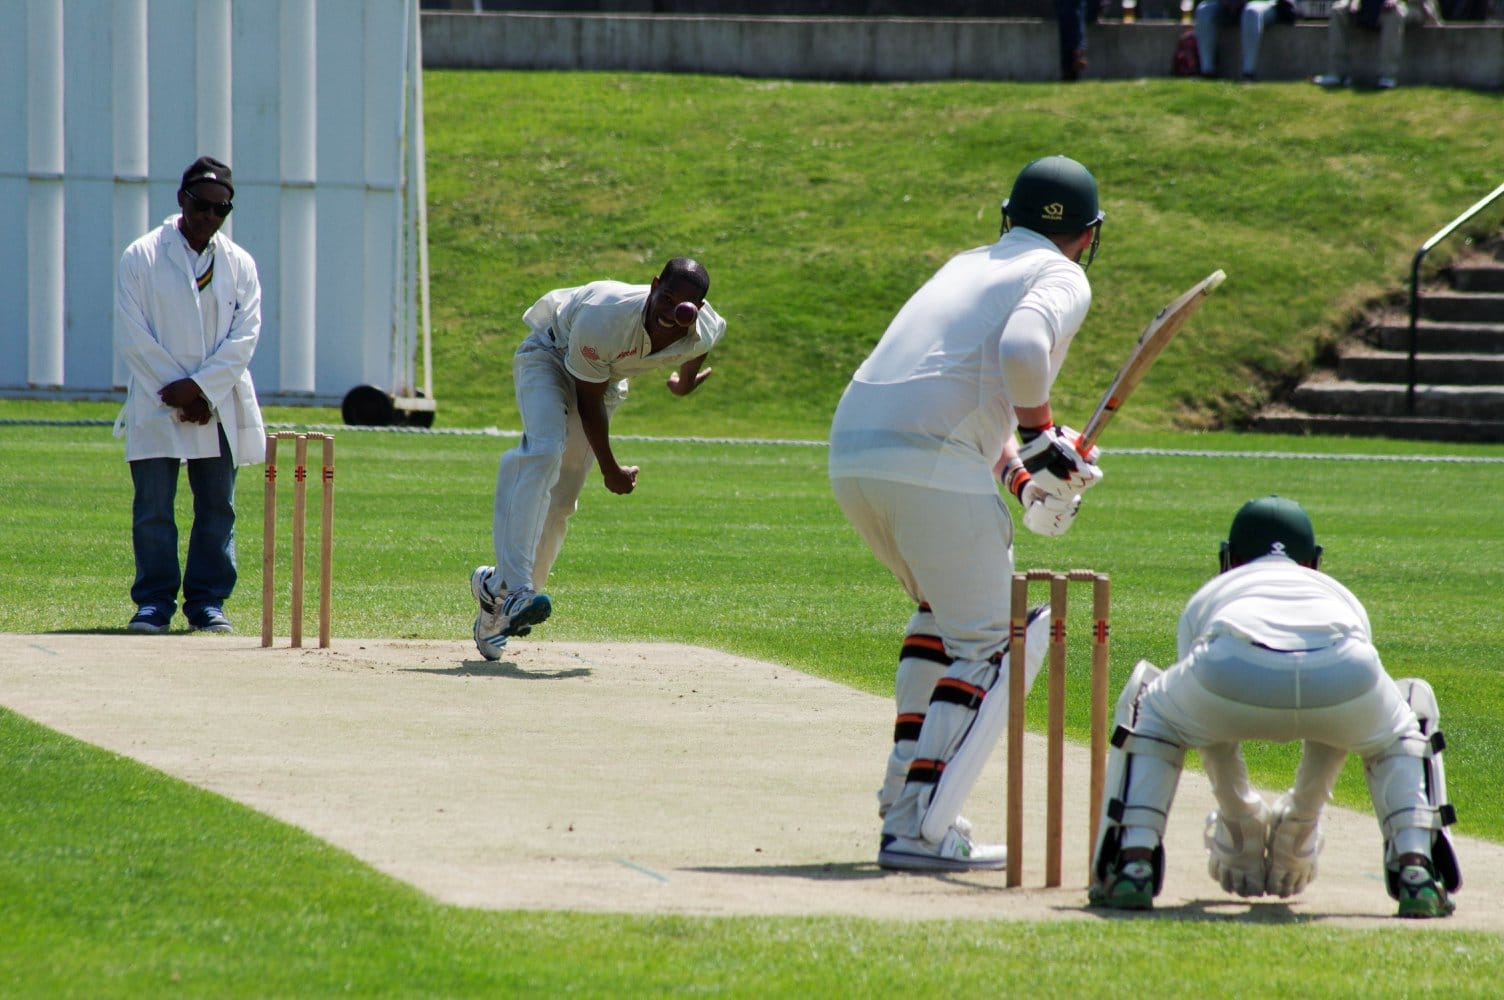 cricketers playing a game